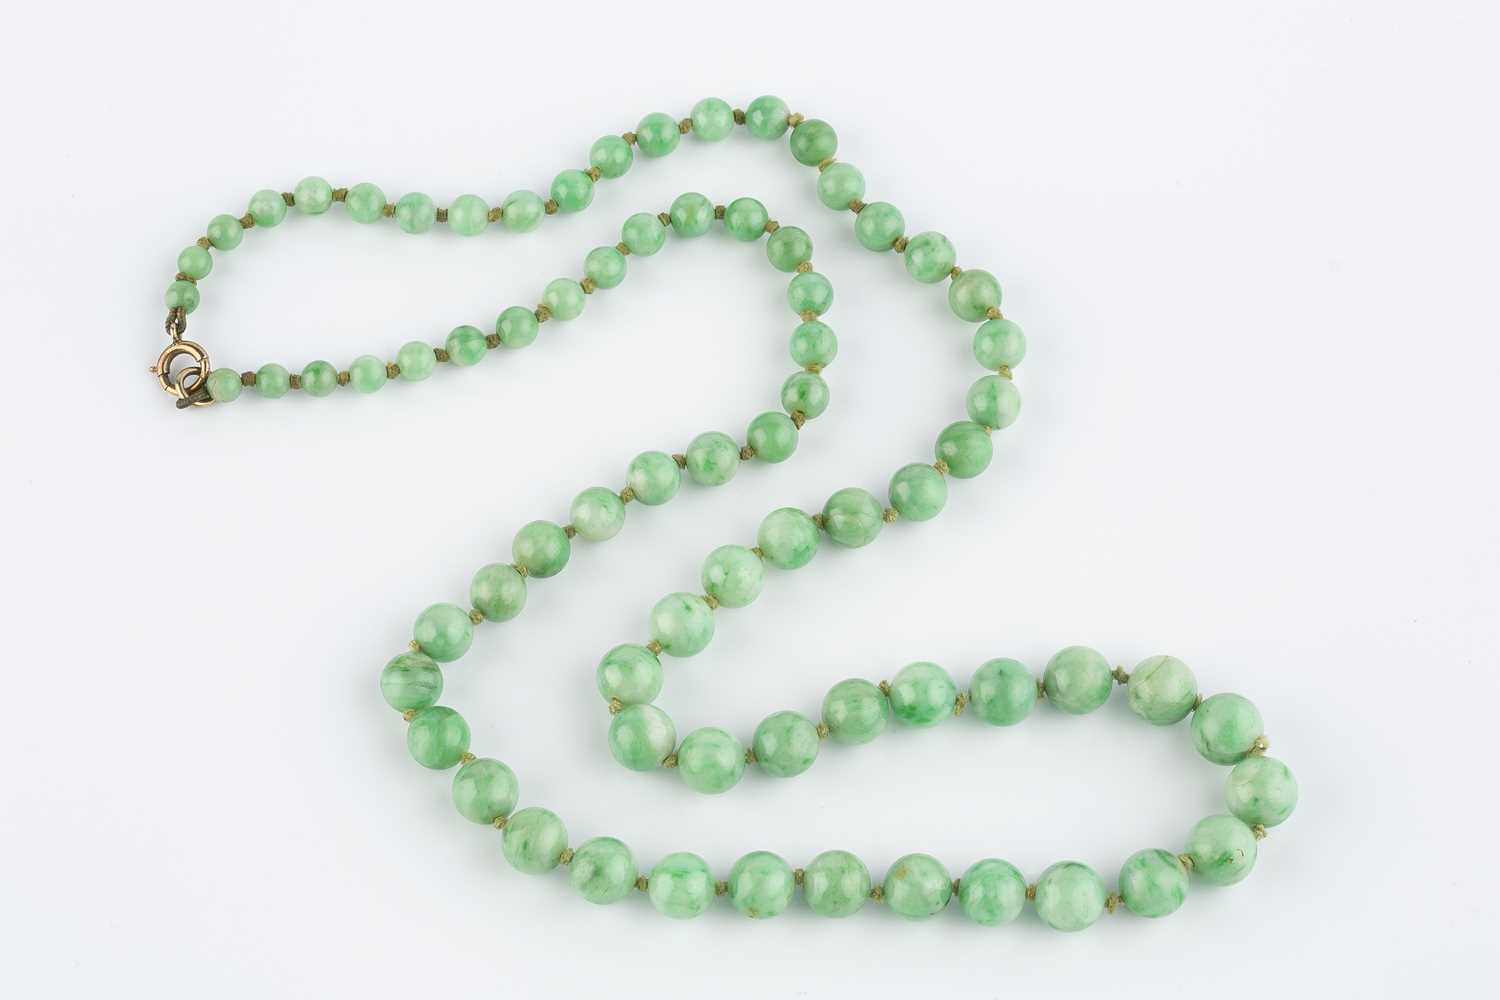 A jade bead necklace, comprising a single strand of jade beads, graduating from approximately 9.